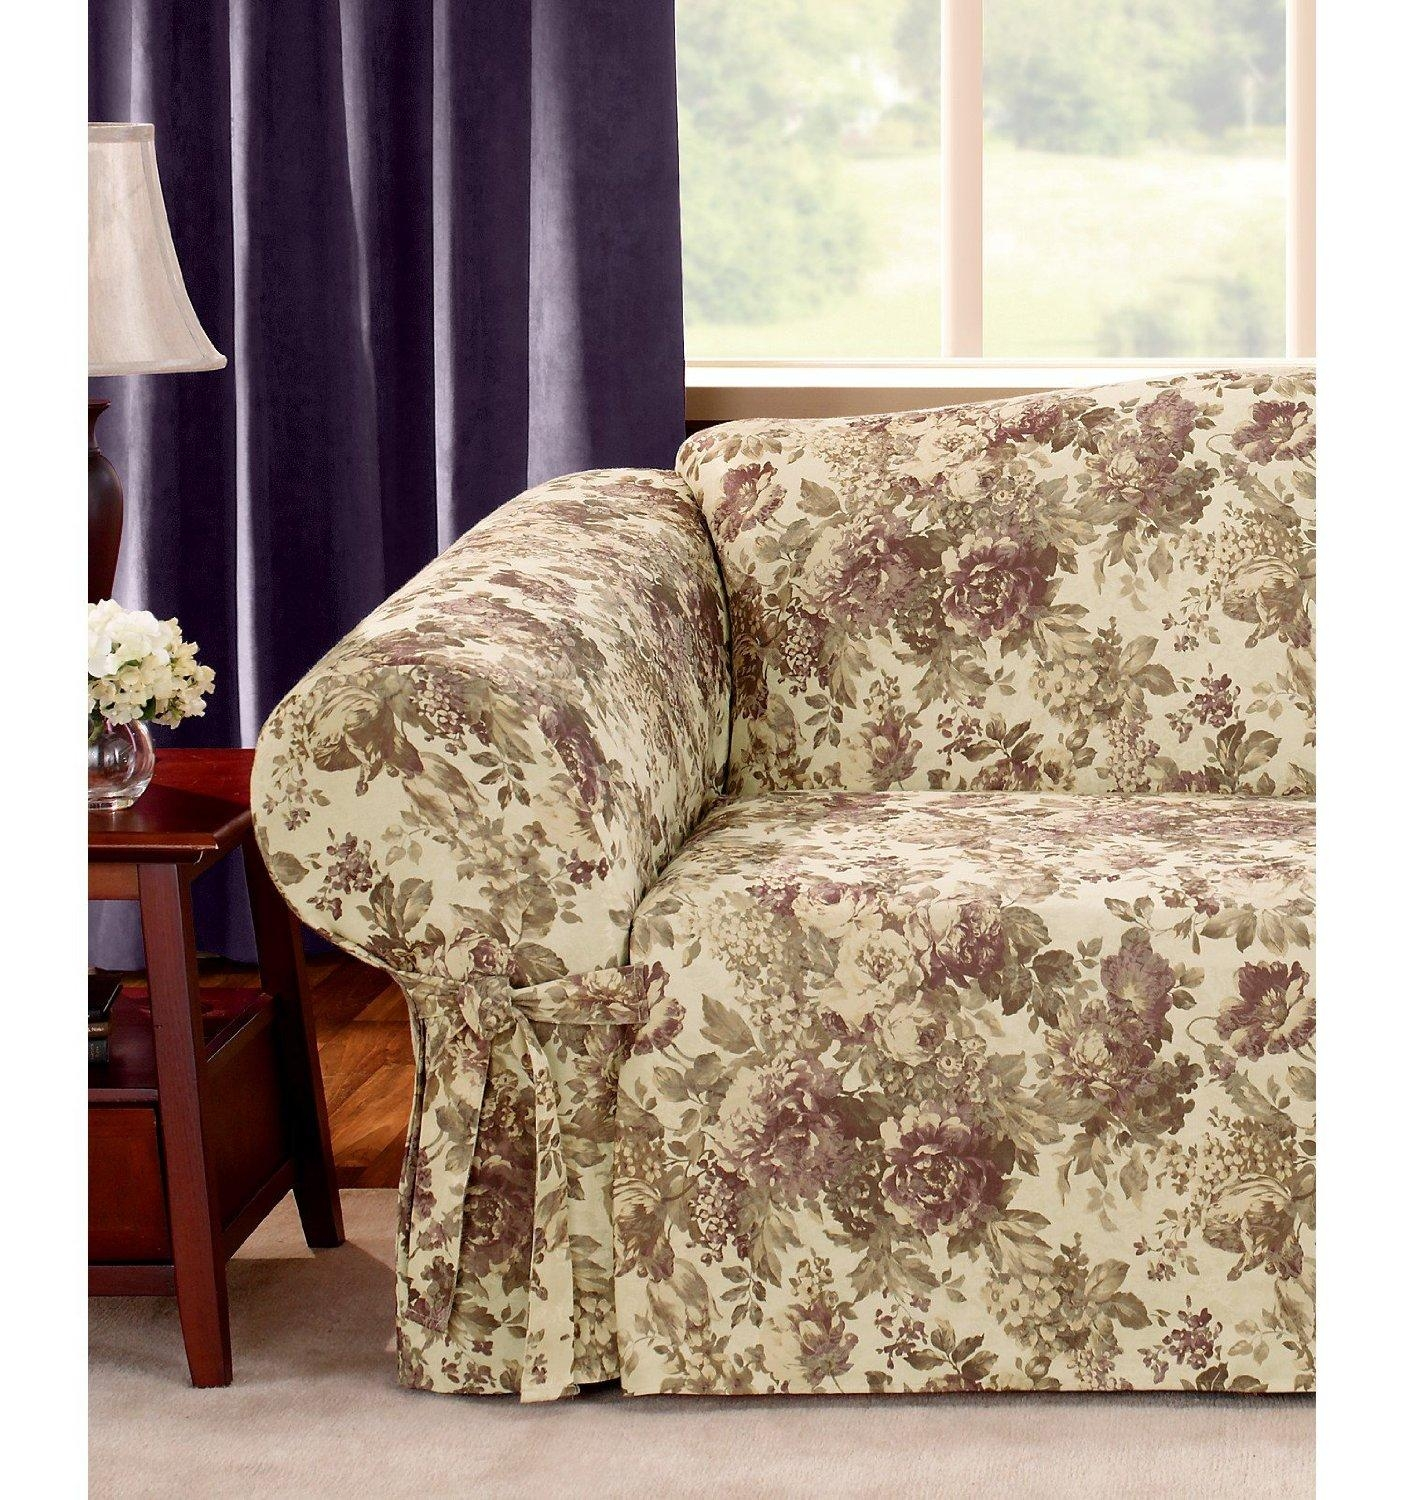 Sofas Center : Fashion Font Floral Sofa Cover Tight Wrap Stretchy Throughout Floral Slipcovers (View 18 of 20)